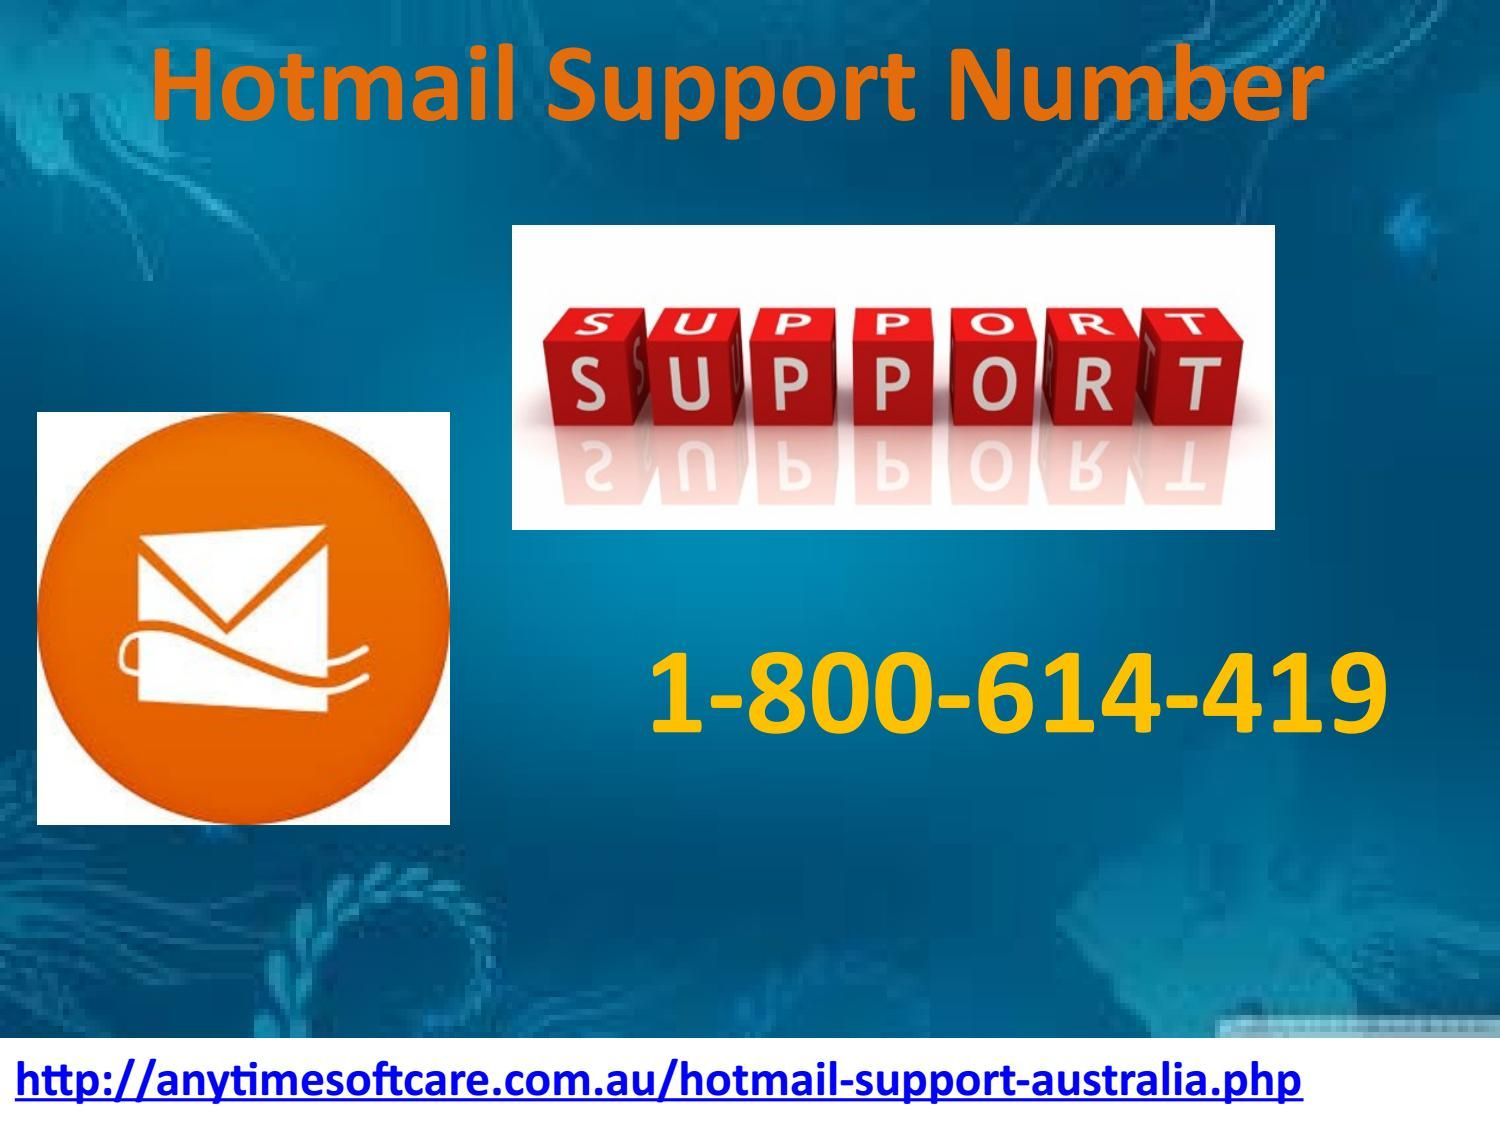 Dial 1800614419 for instant Hotmail Support Number